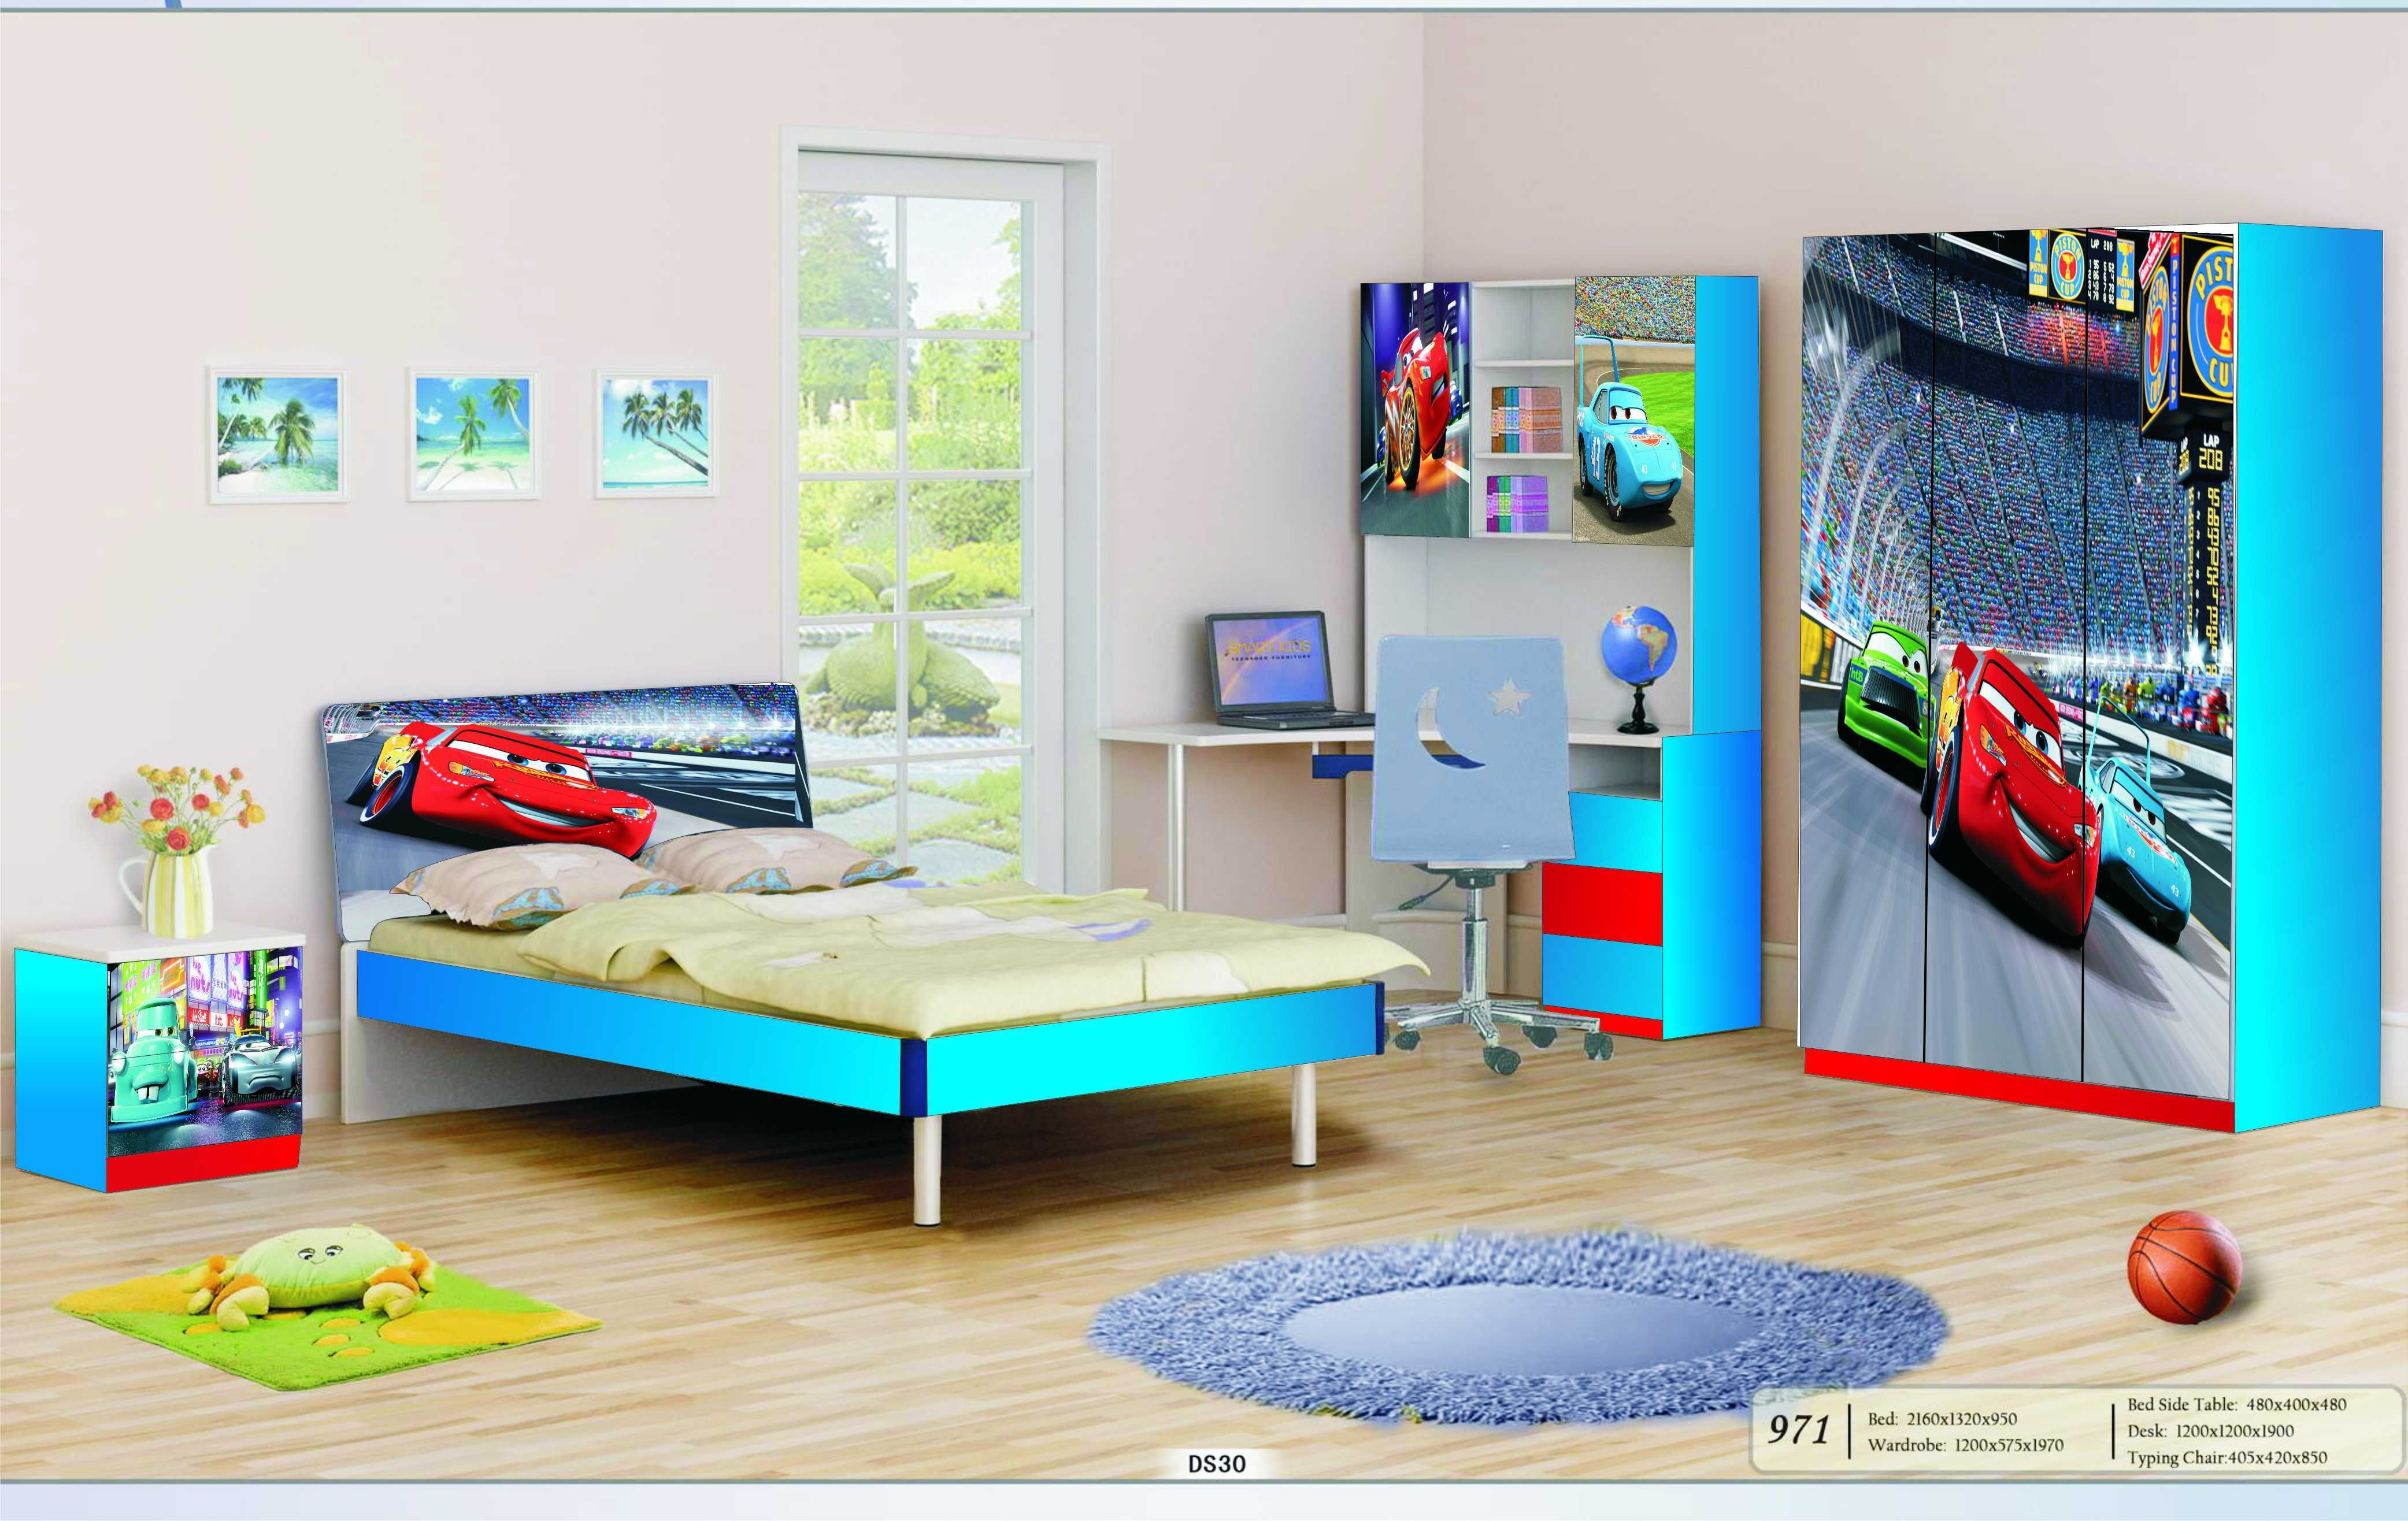 15 Lovely Childrens Bedroom Furniture Sets Ideas Manlikemarvinsparks Com Childrens Bedroom Furniture Sets Toddler Bedroom Design Childrens Bedroom Furniture